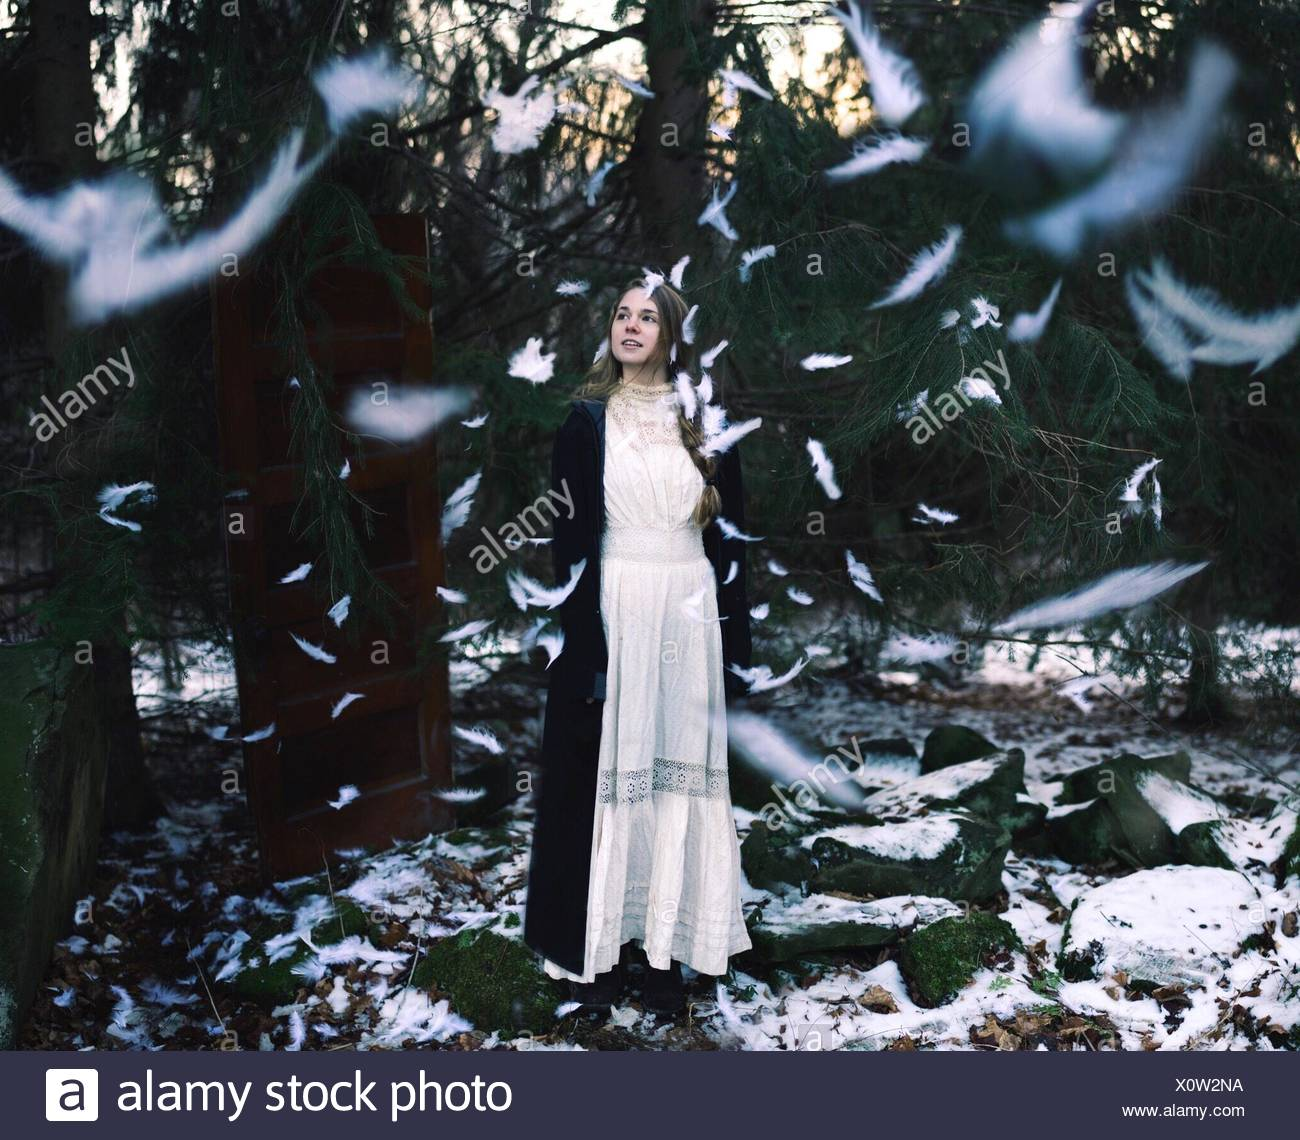 Young woman standing in forest with feathers falling all around - Stock Image